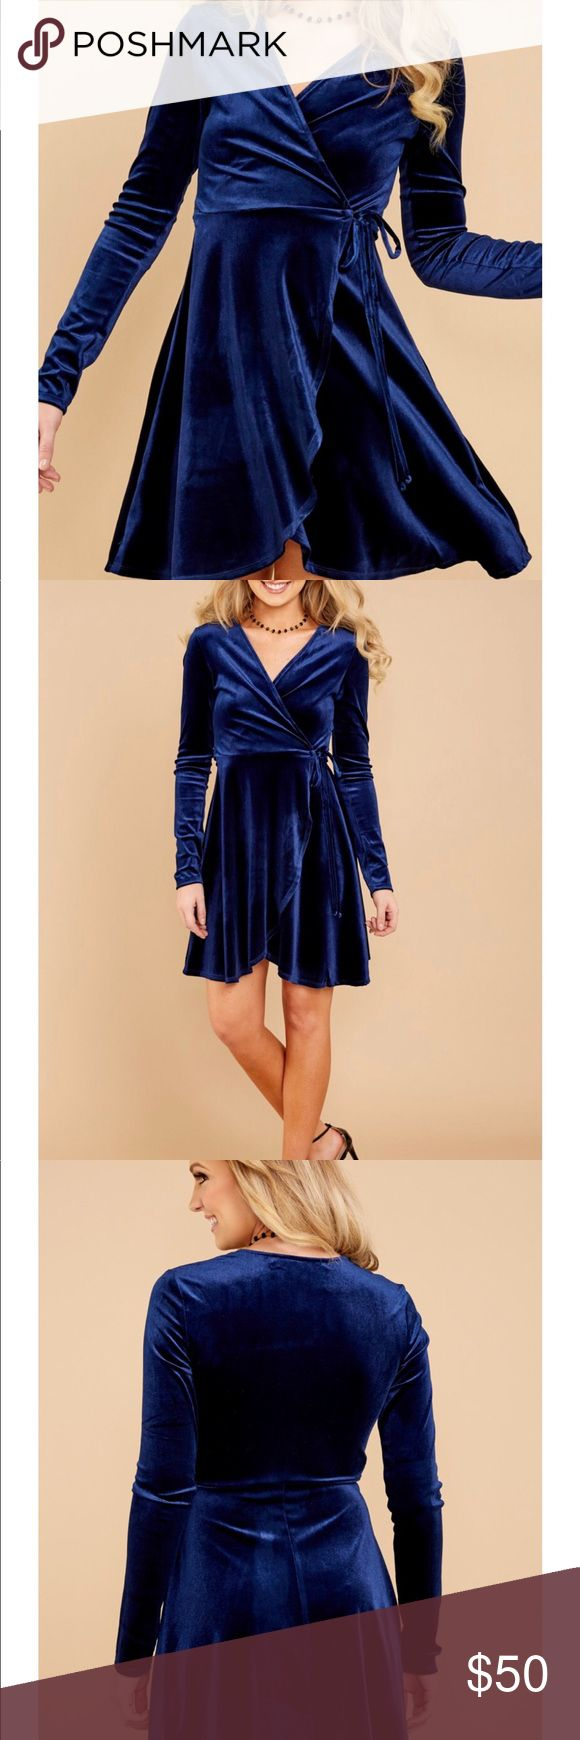 NWT Blue Velvet Dress SZ L Bought from red dress boutique!! Never worn! Paid $42 so trying to get my money back red dress boutique Dresses Mini